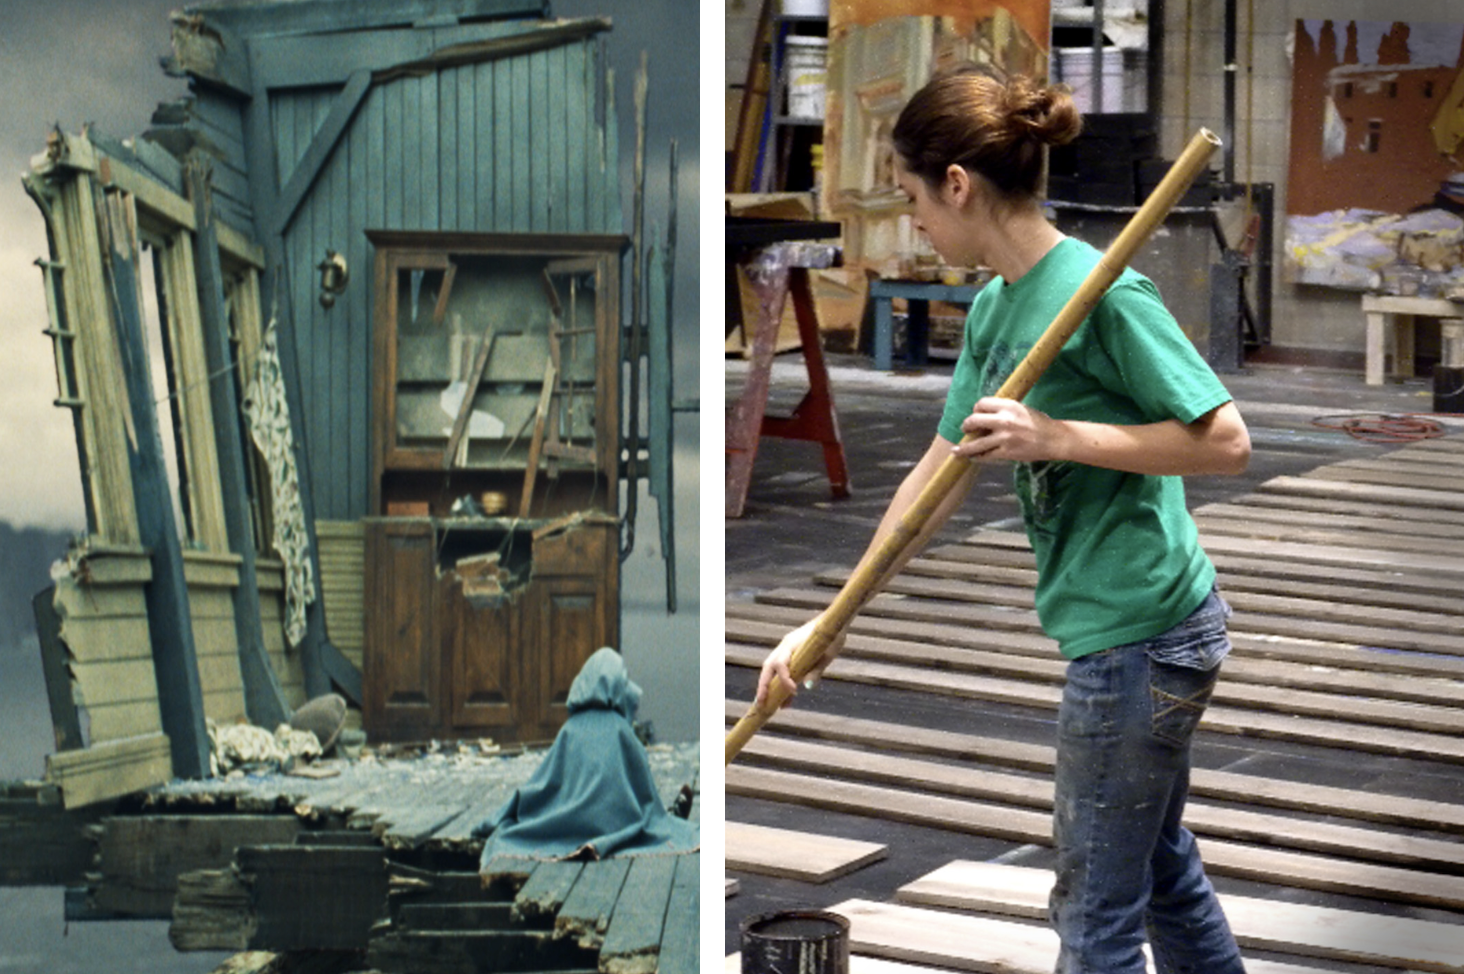 painter and scenery from series of unfortunate events